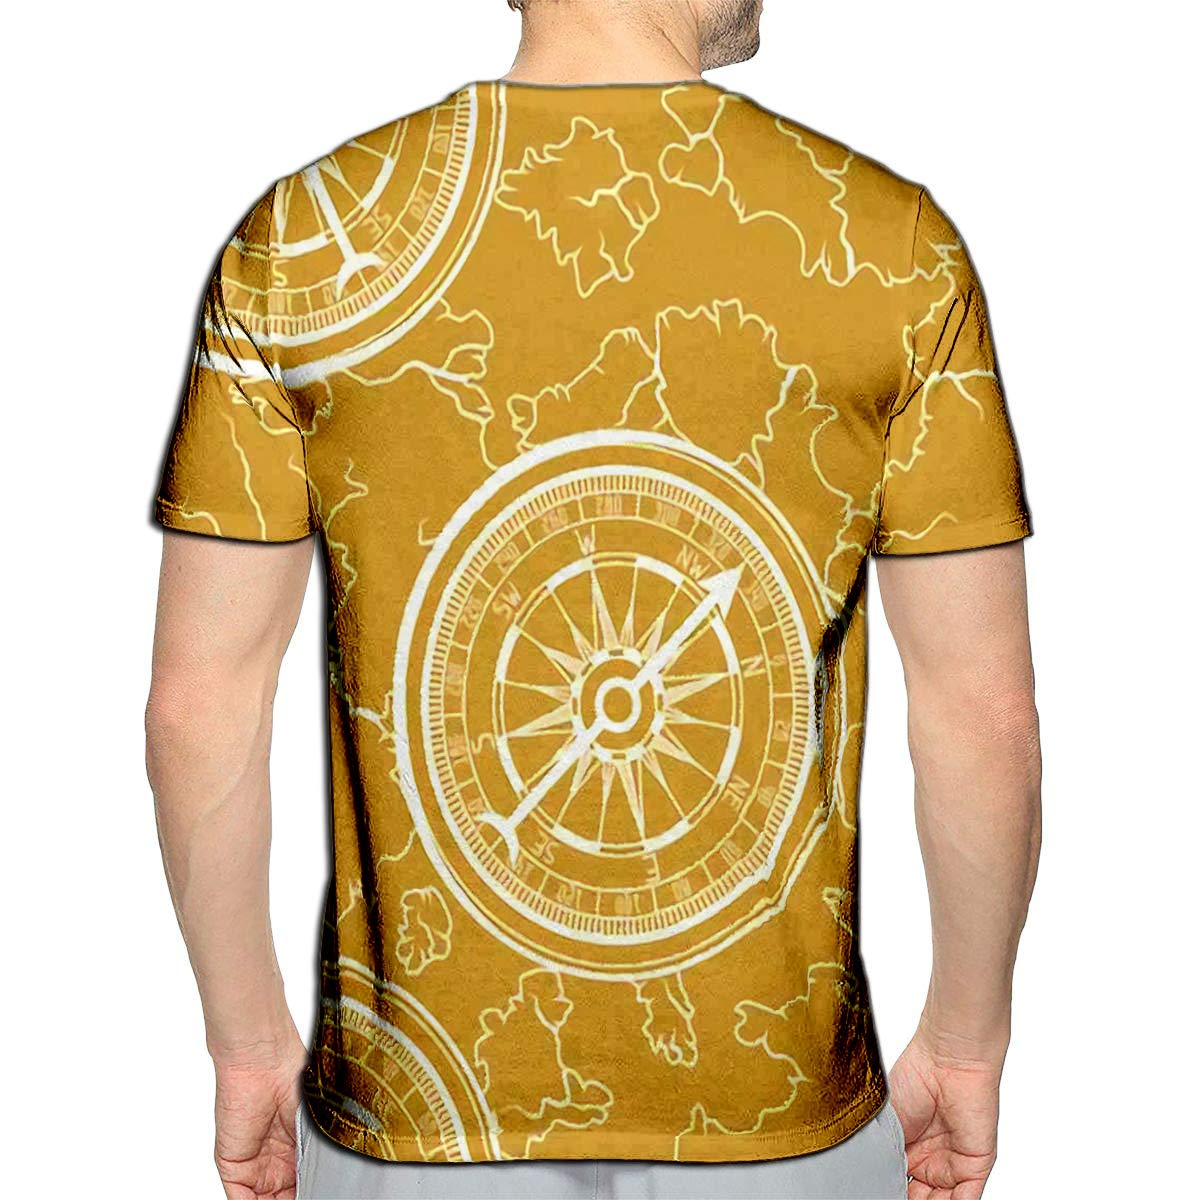 3D Printed T-Shirts Change Your Thoughts and Change Your World Short Sleeve Tops Tees